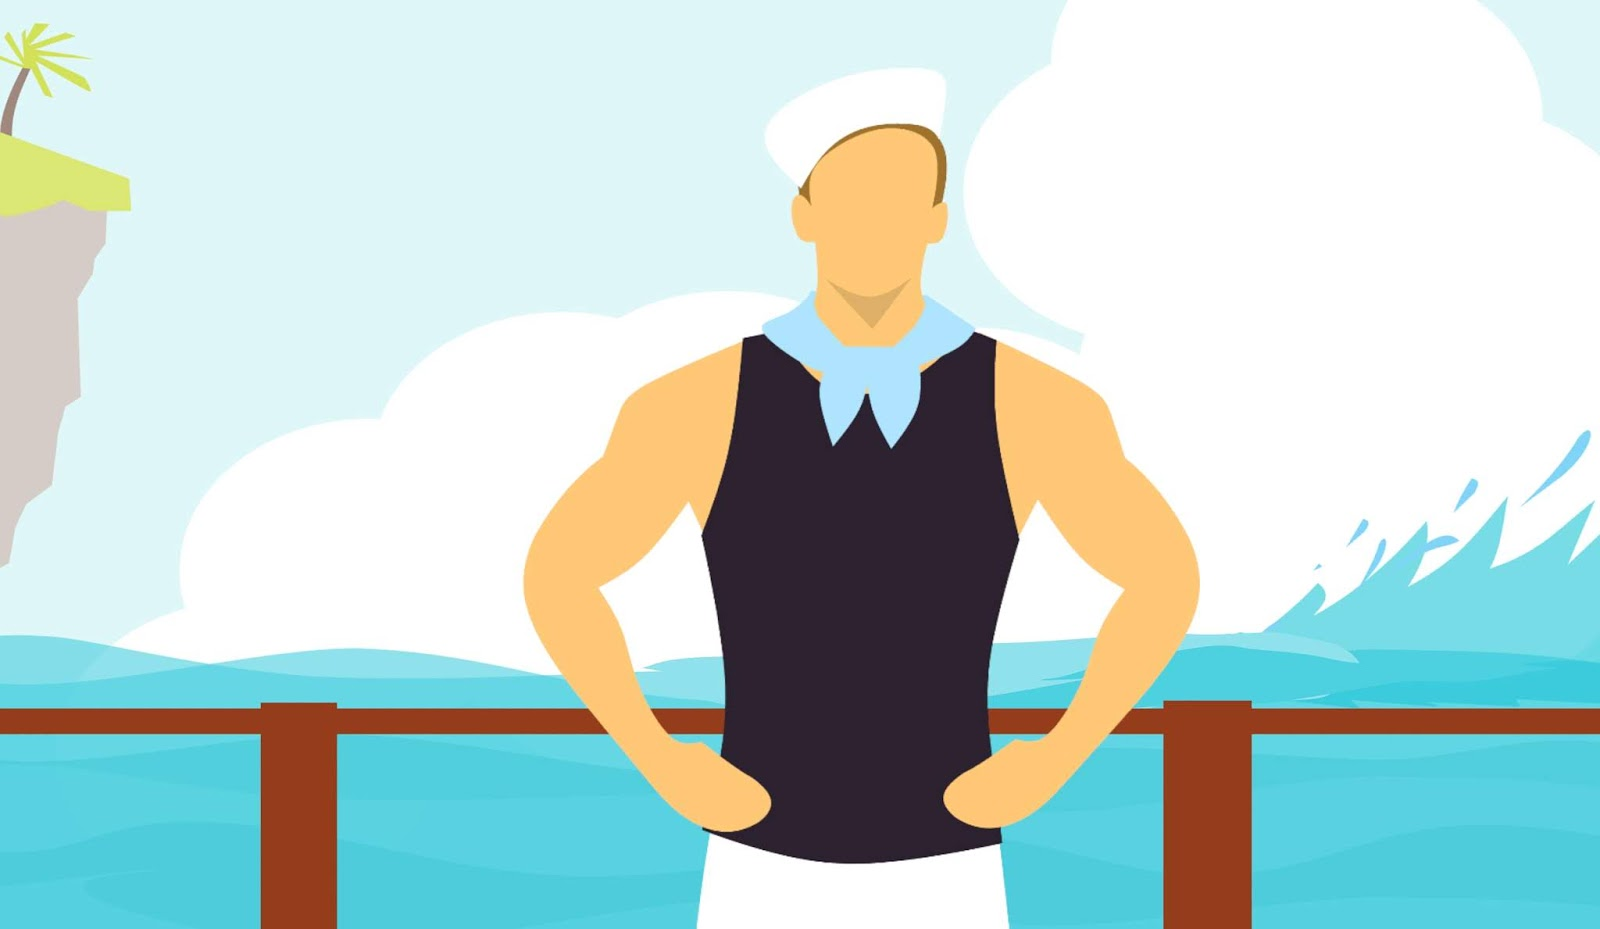 sailor, uniform, work, strong, man, return, white, worker, boat, sea, ocean, water, blue, sky, nature, travel, vacation